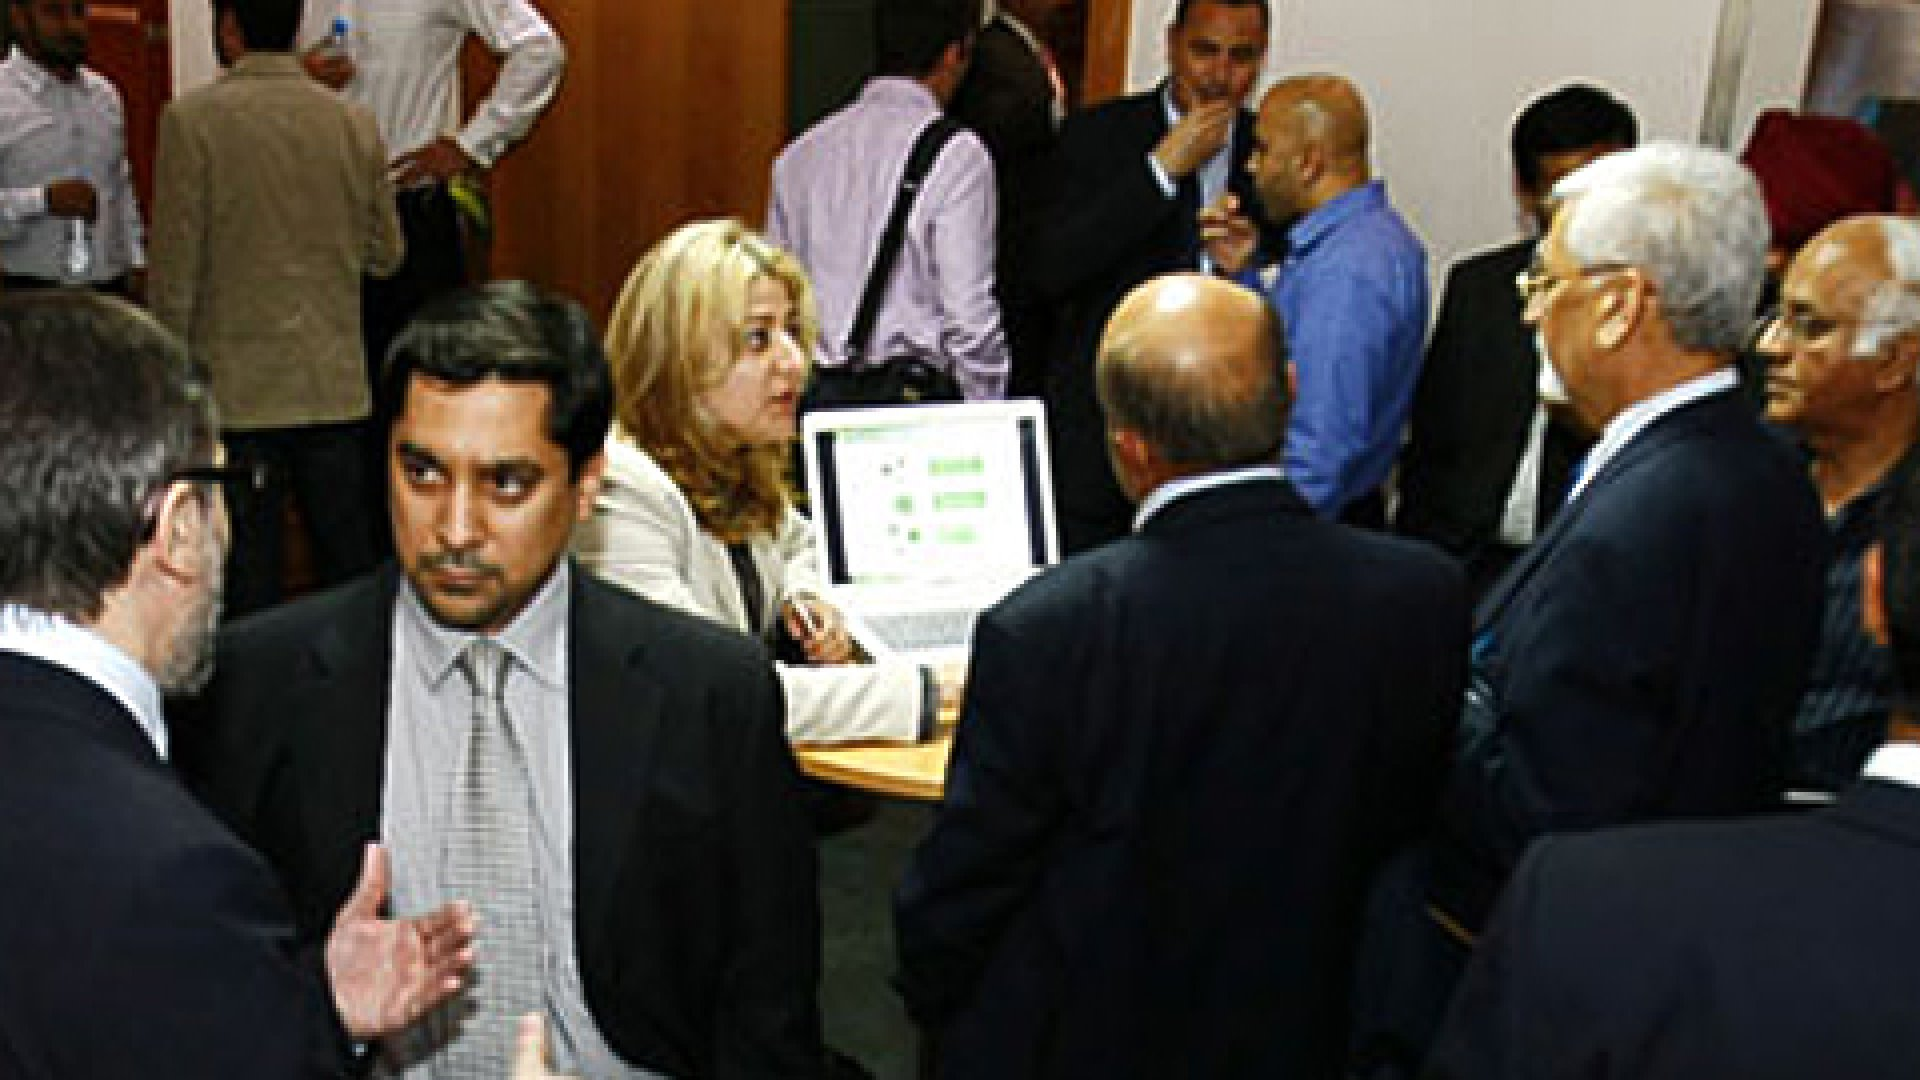 TiE Global event, Dubai